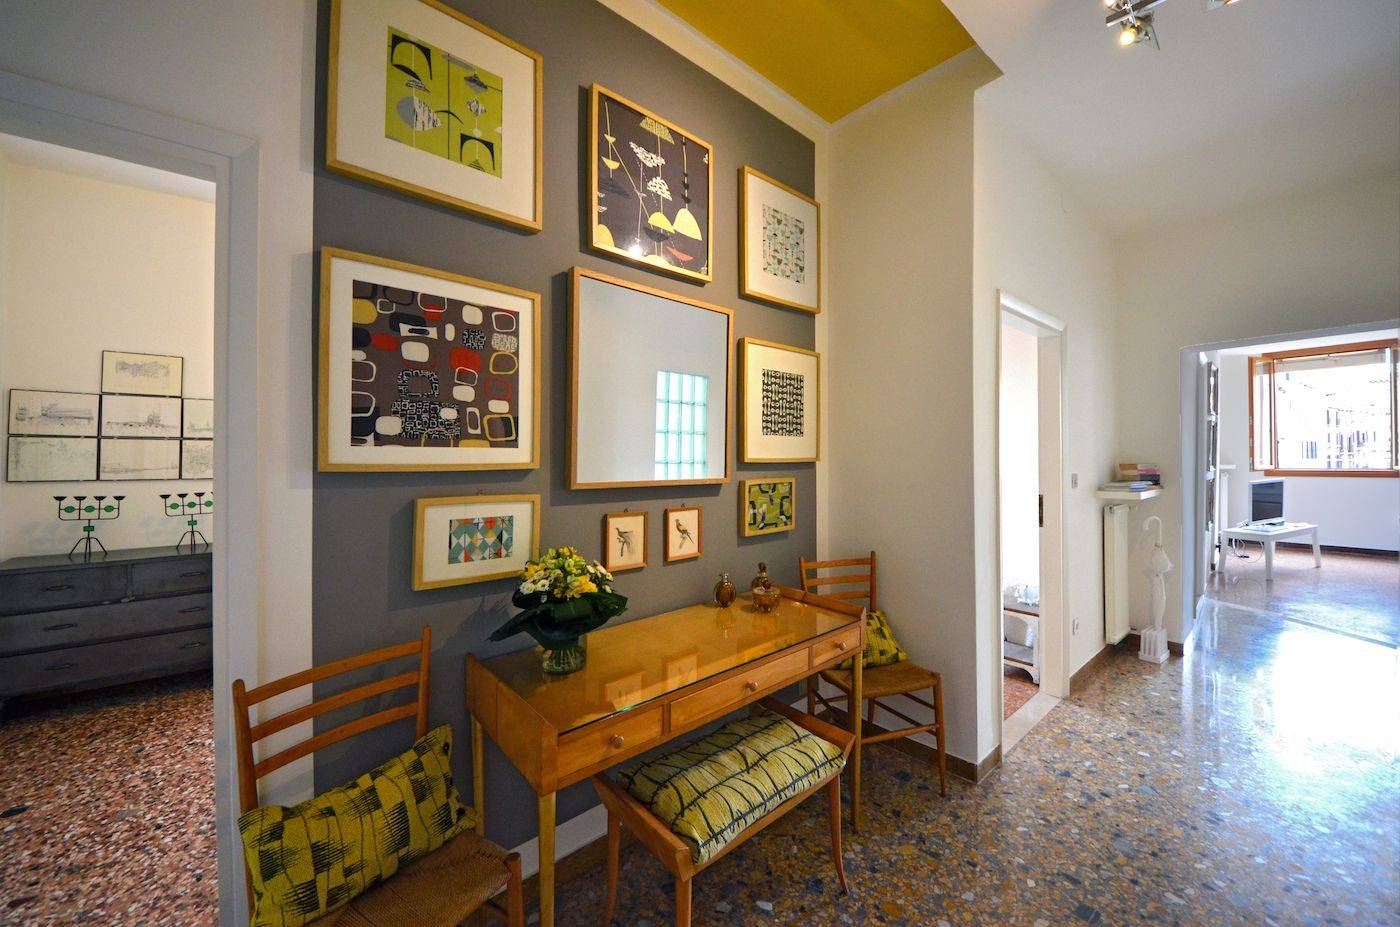 the nicely decorated entrance room leads to from the kitchen to the bedrooms and living room